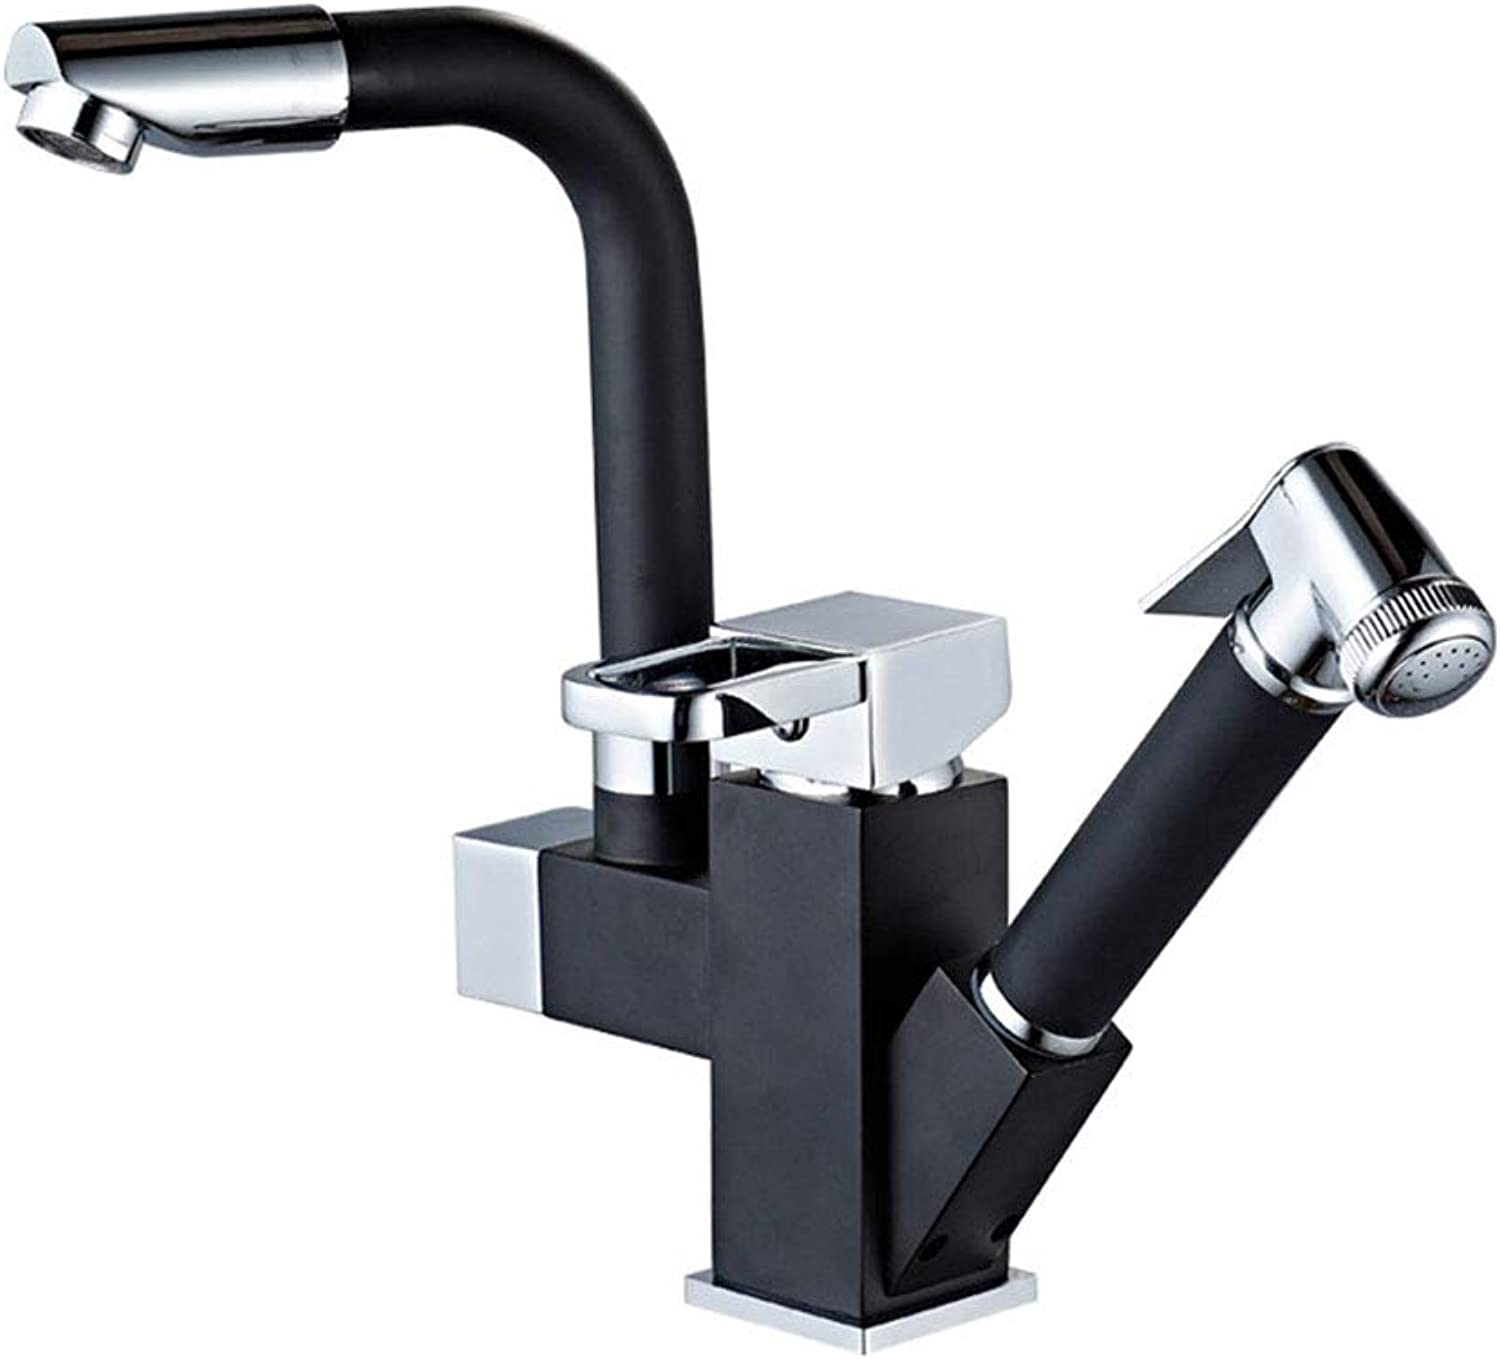 Water Tapfaucet Taps Pull-Type Hot and Cold Water Faucet Kitchen Sink Full Copper Telescopic redatable Laundry Sink Sink Sink Home for Home Kitchen Stainless Steel Single Lever Deck Mounted,Black